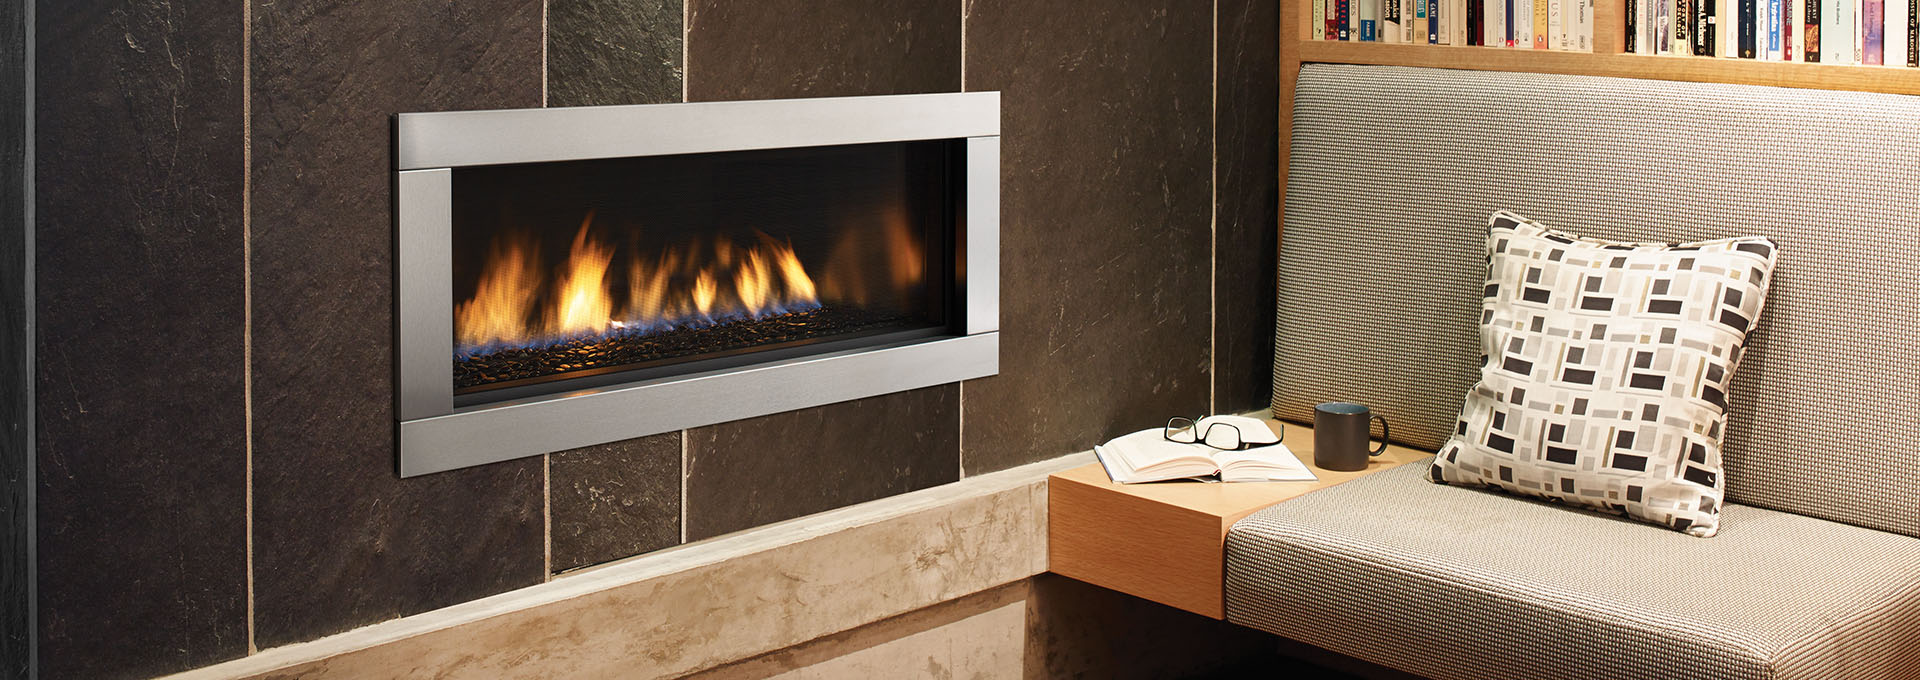 Regency horizon hz30e contemporary gas fireplace toronto for Modern gas fireplace price